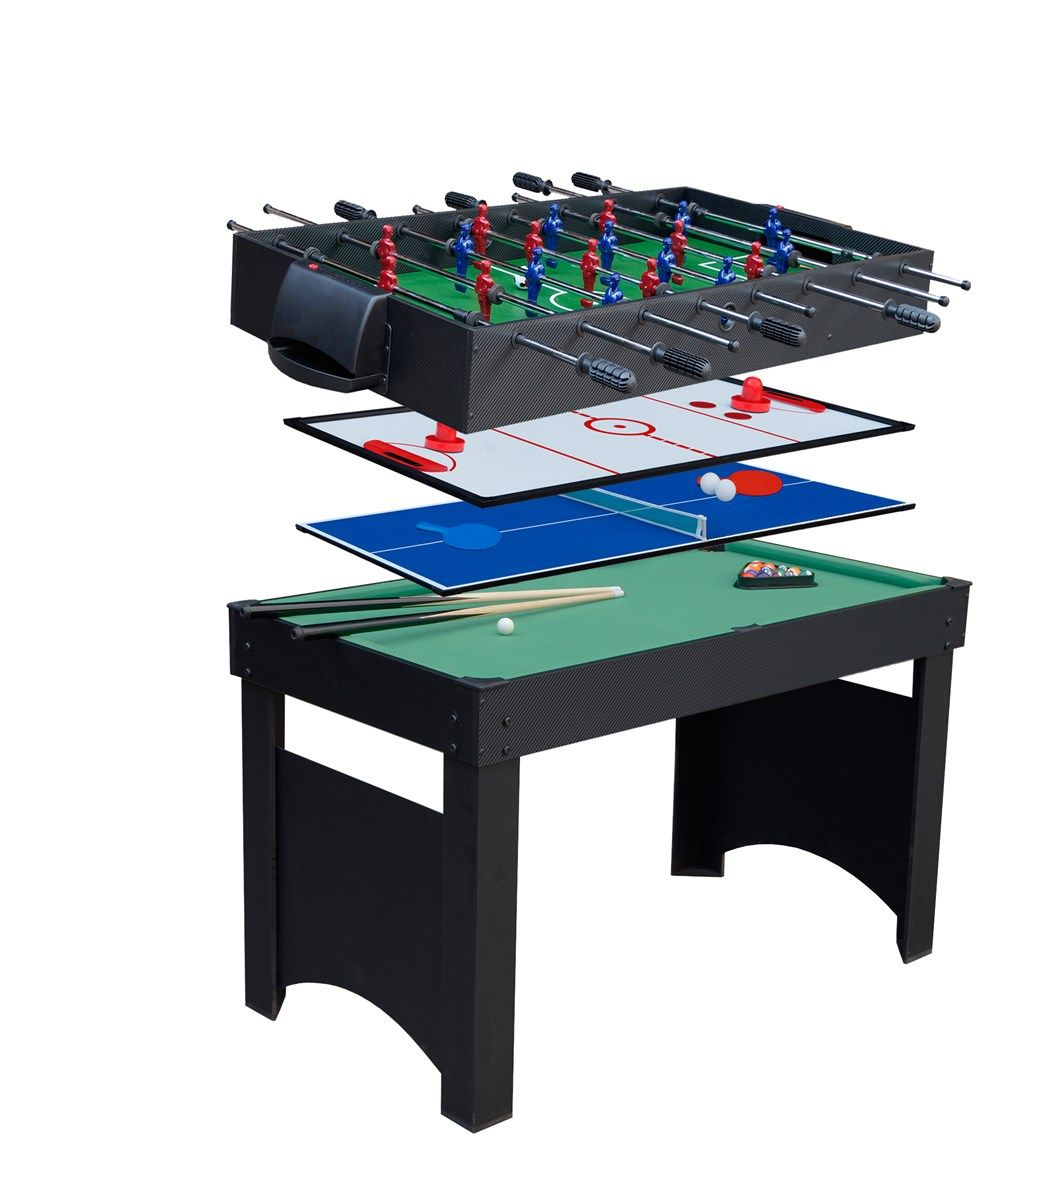 Marvelous This Has To Be The Ultimate In Games Tables. 4 Games In One!